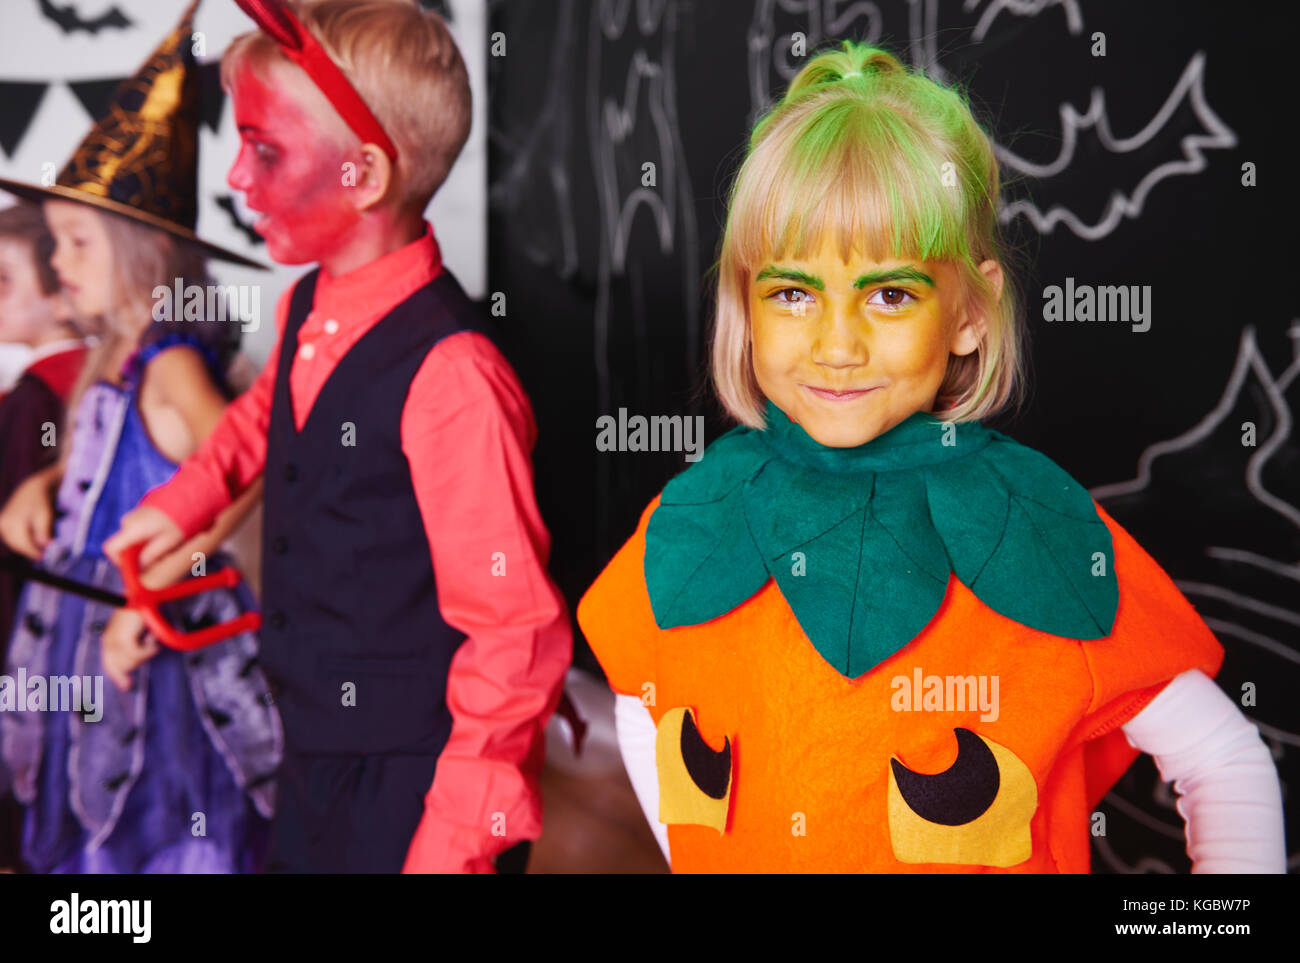 Cute girl in pumpkin costume celebrating halloween with friends  sc 1 st  Alamy : pumpkin girl costume  - Germanpascual.Com